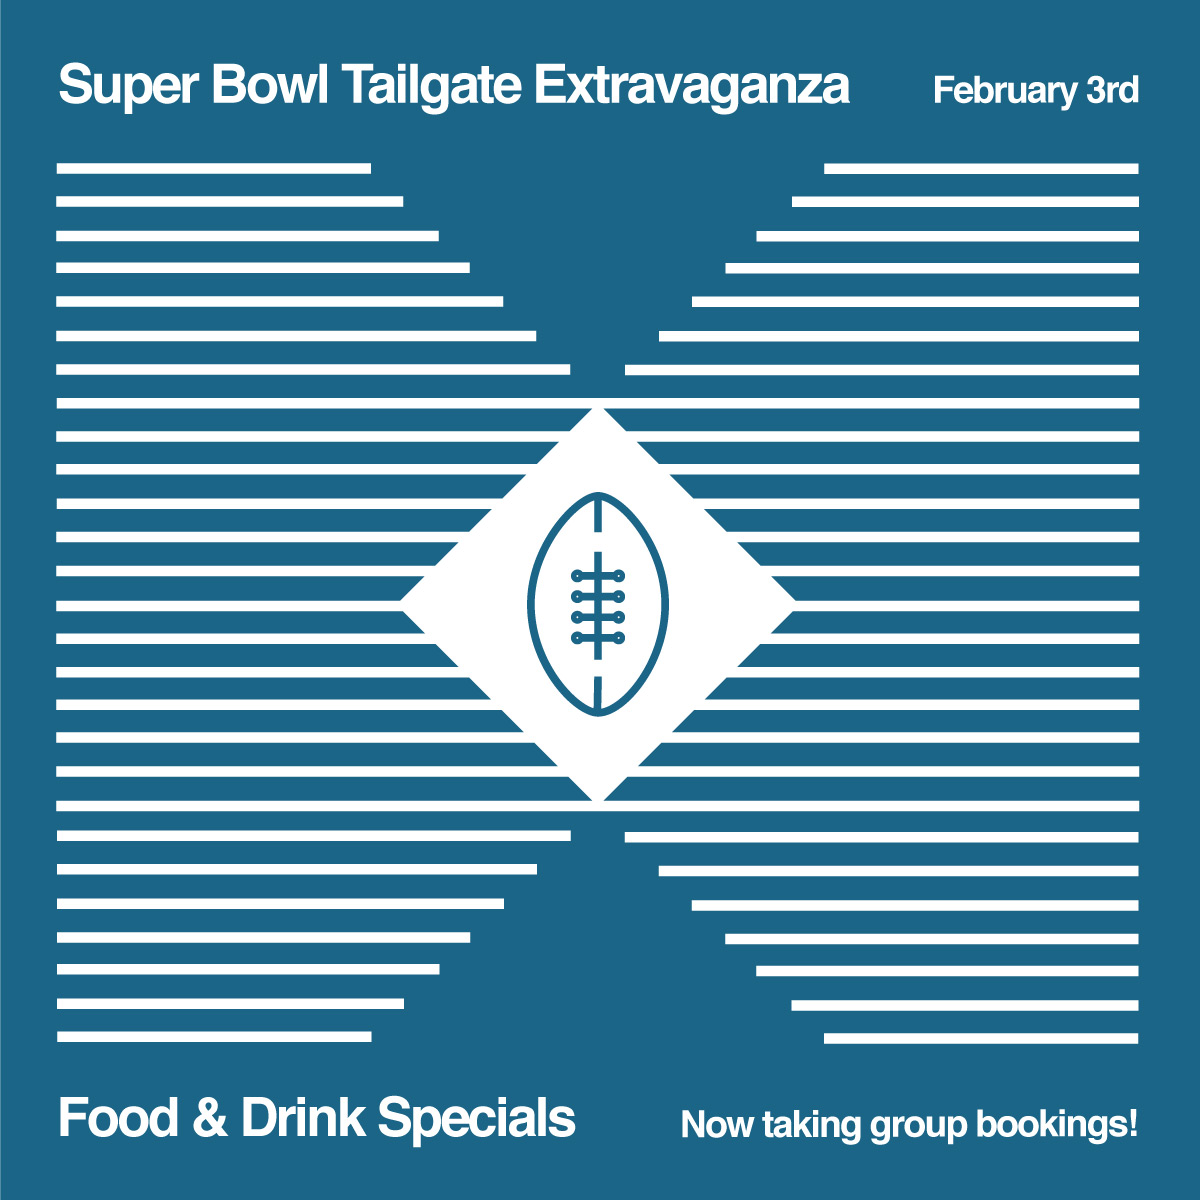 Bells and Whistles Announces Tailgate Extravaganza For Superbowl LIII